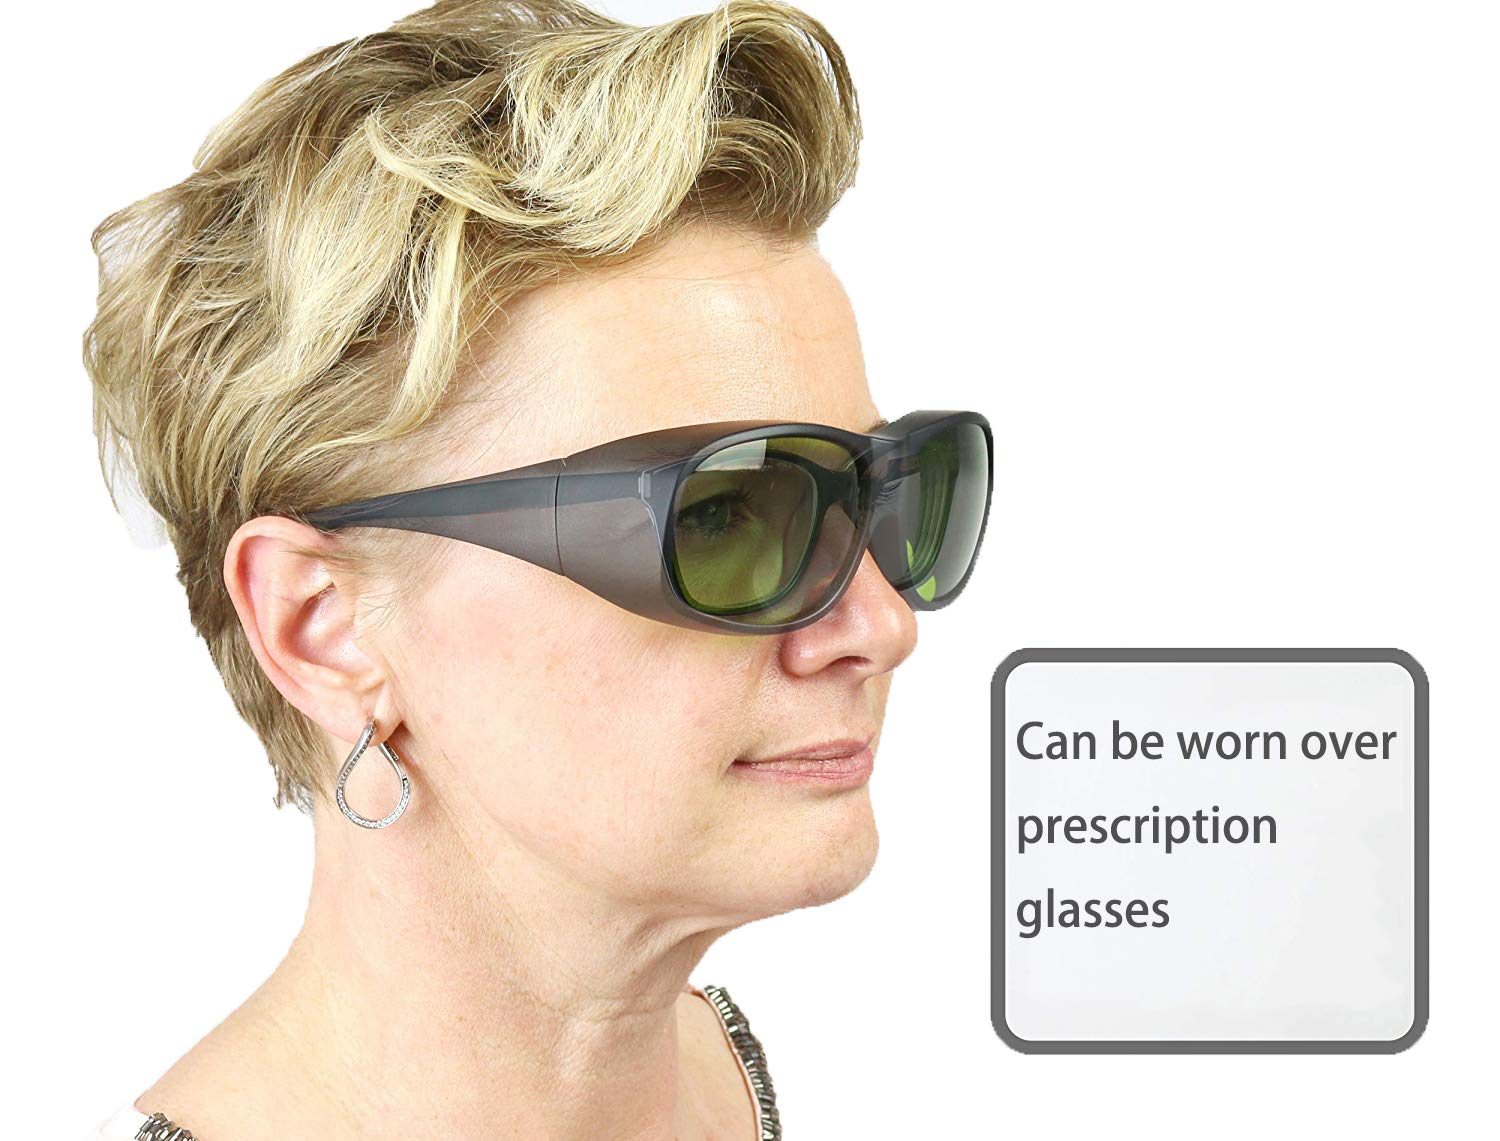 LP-LaserPair Laser Glasses 800 - 1100nm Absorption Type of Laser Protective Glasses Diode, Nd:yag Laser Protection Glasses Multi Wavelength 808nm, 980nm, 1064nm, Laser Safety Glasses by LP-LaserPair (Image #2)